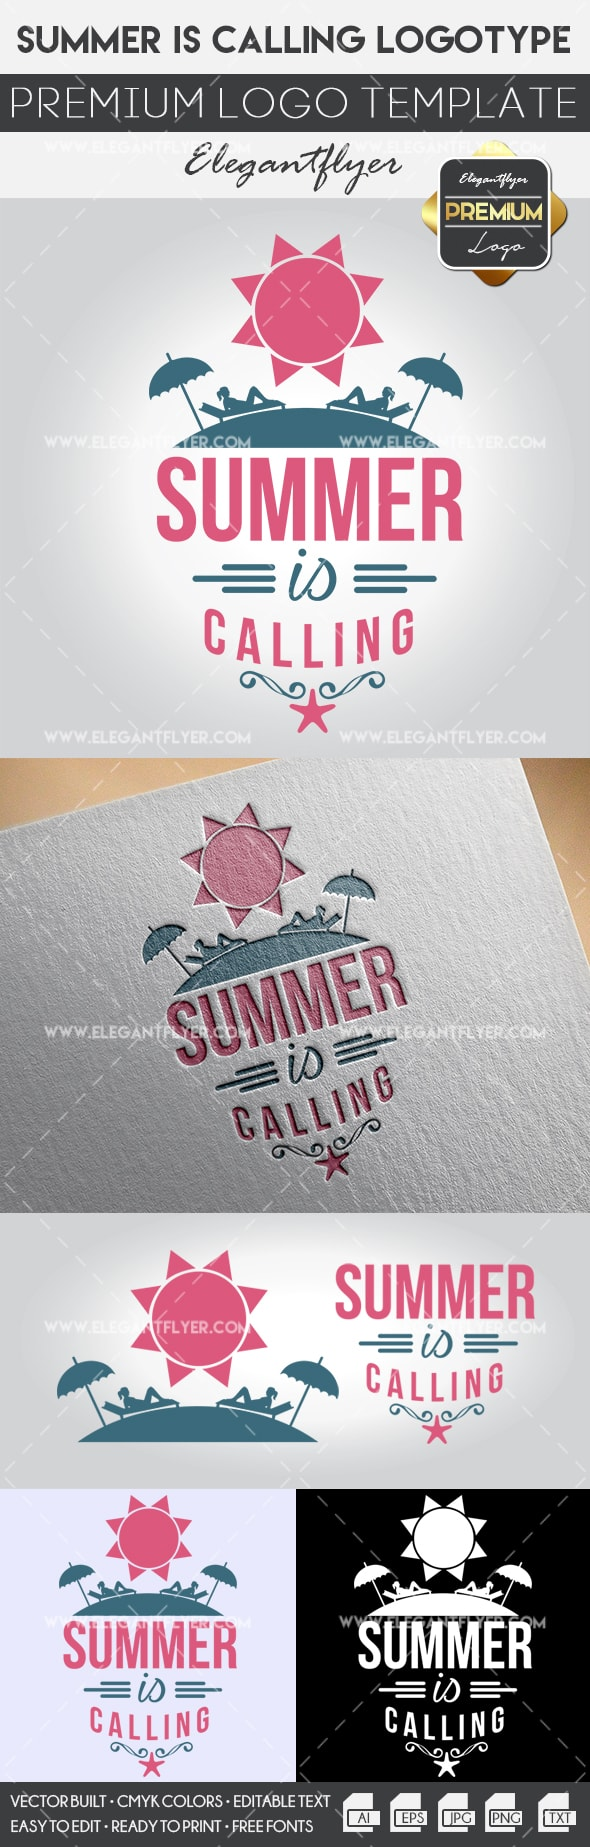 Summer Is Calling – Premium Logo Template